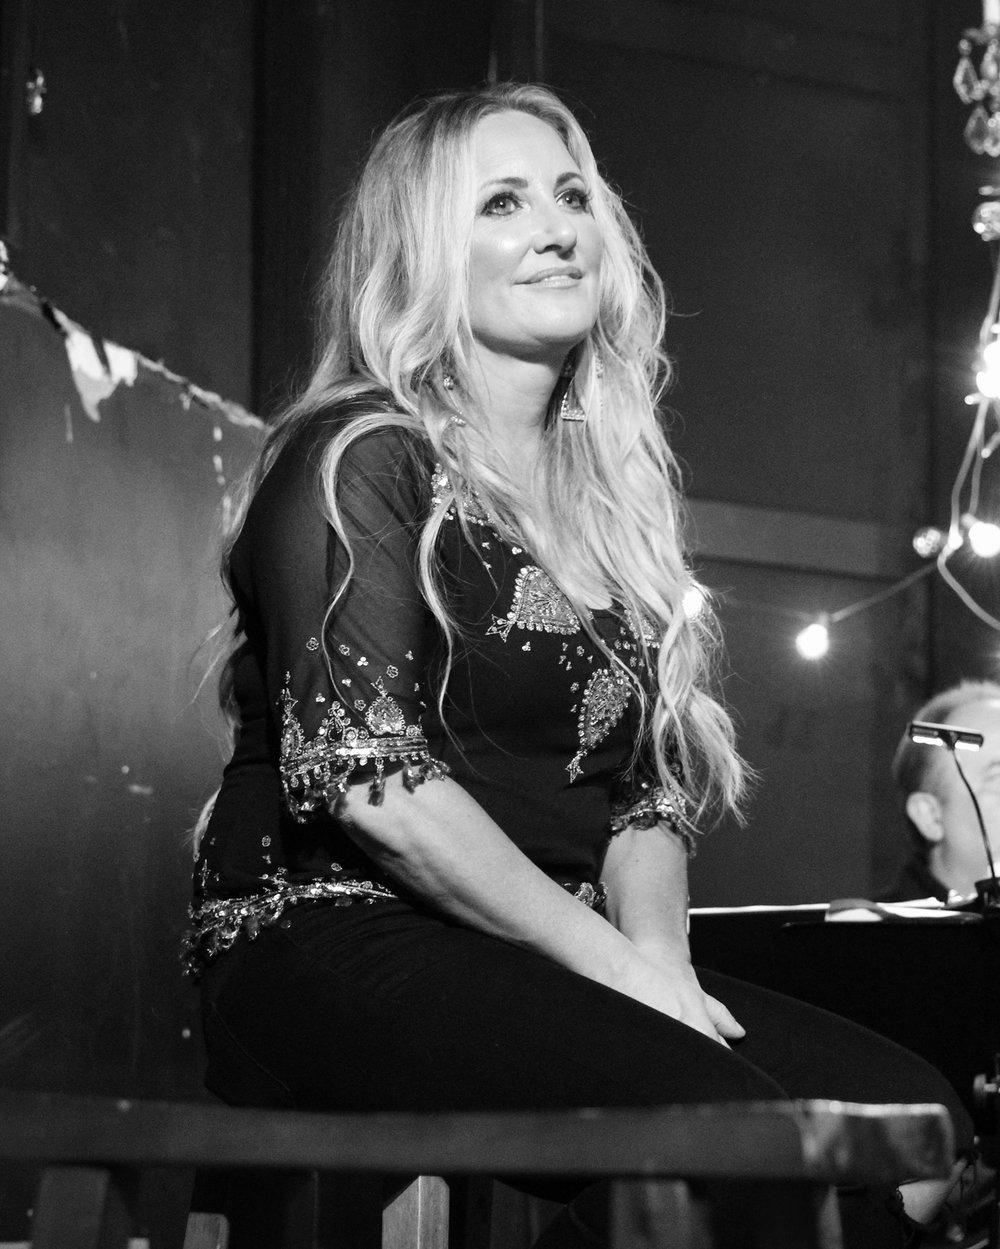 Lee Ann Womack, by Chad Cochran